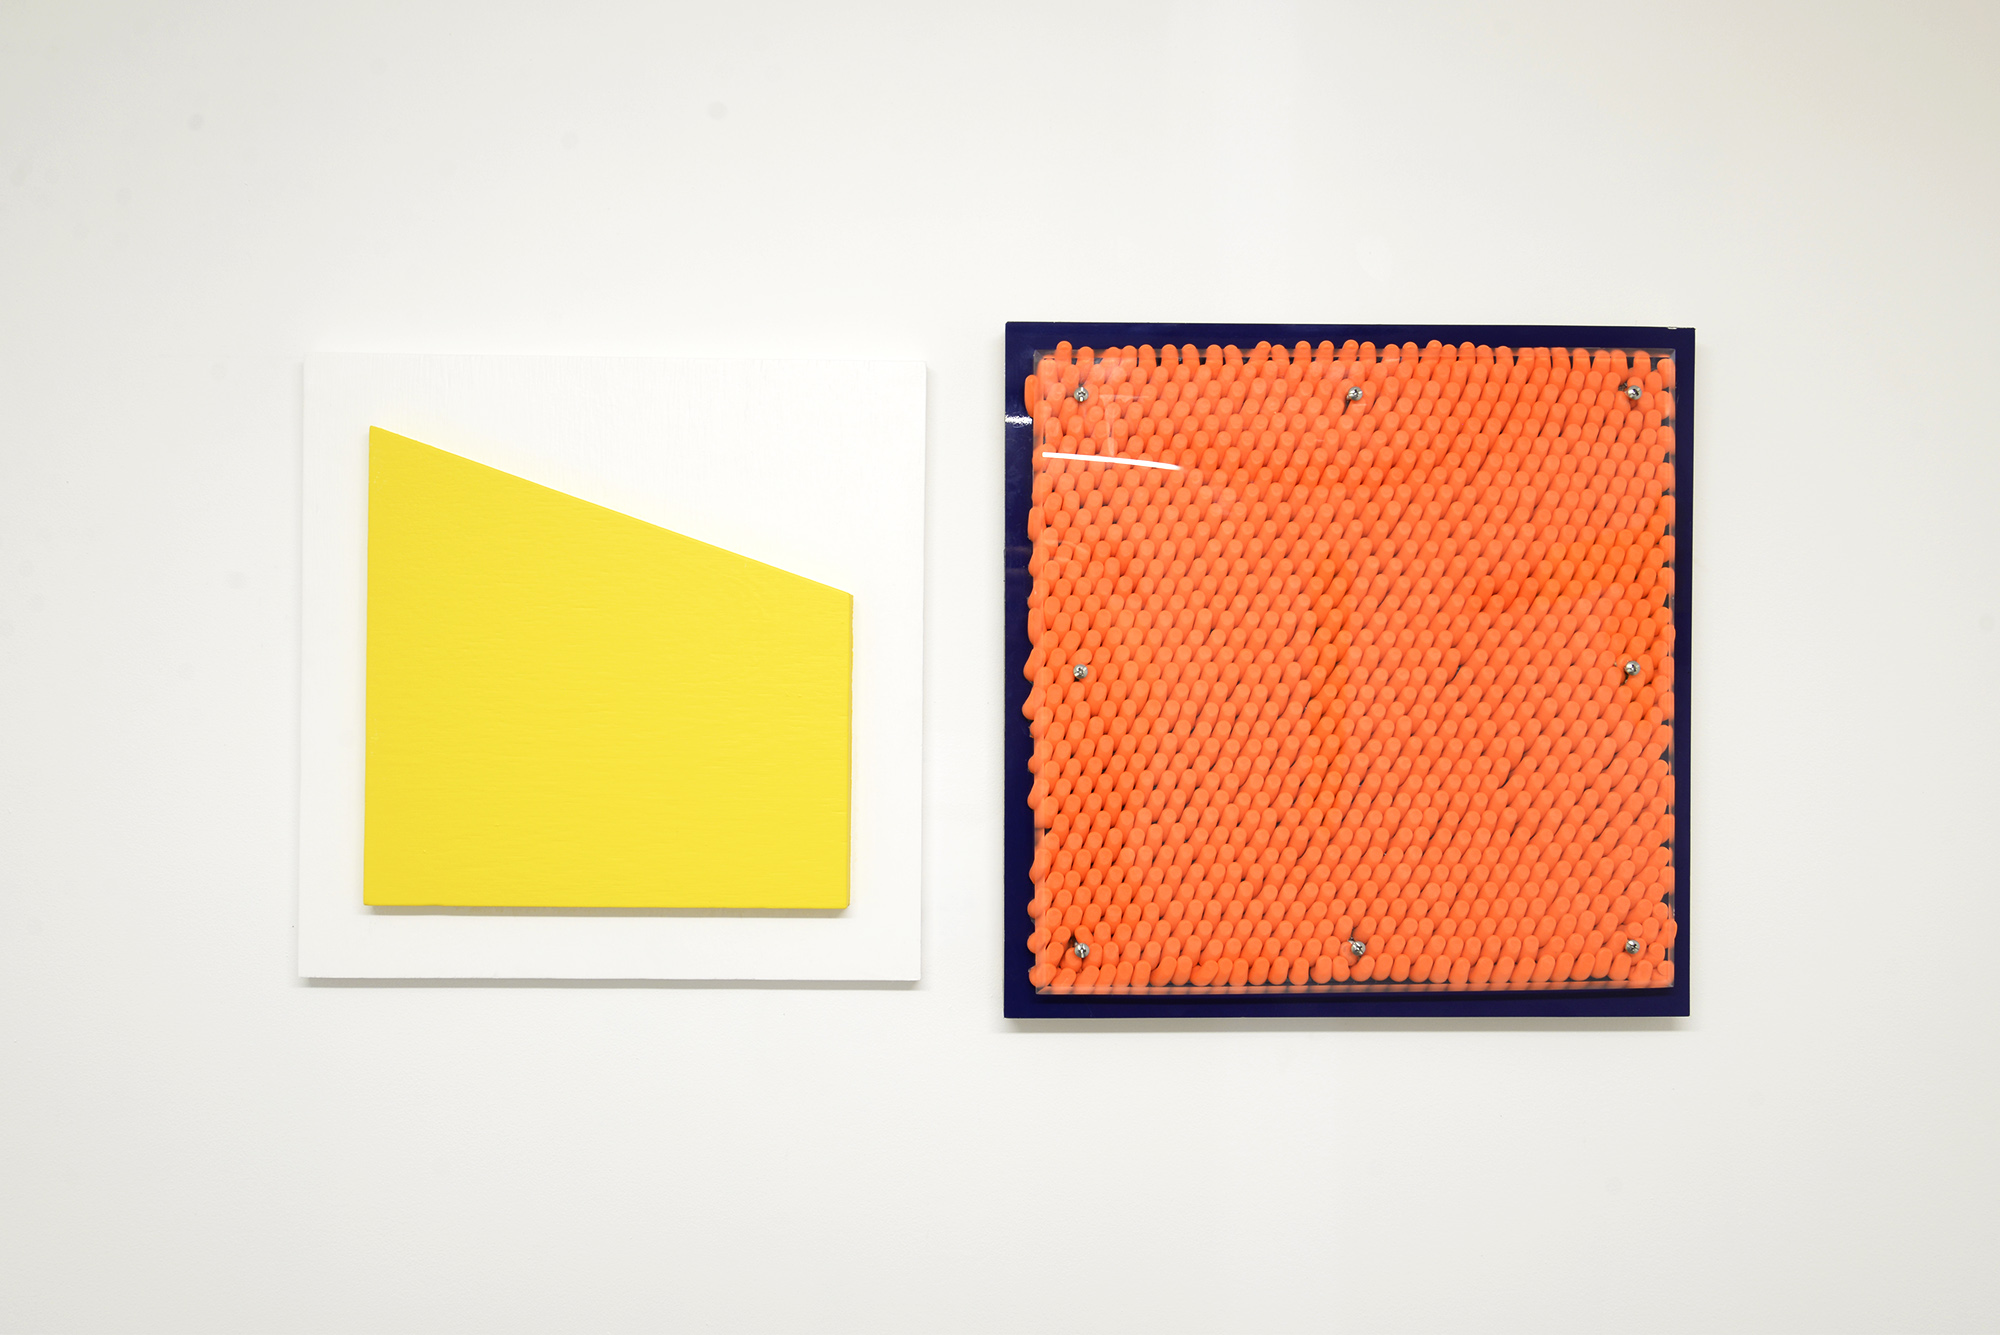 Left: Liam Marsden  100-67  2018 plywood and Dulux Softsun and Vivid White interior paint 30cm x 30cm Right: Jordan Azcune  Hang up , 2018 double plywood, composite aluminium panel, glue, ear plugs, acrylic, screws, washers 50cm x 50cm